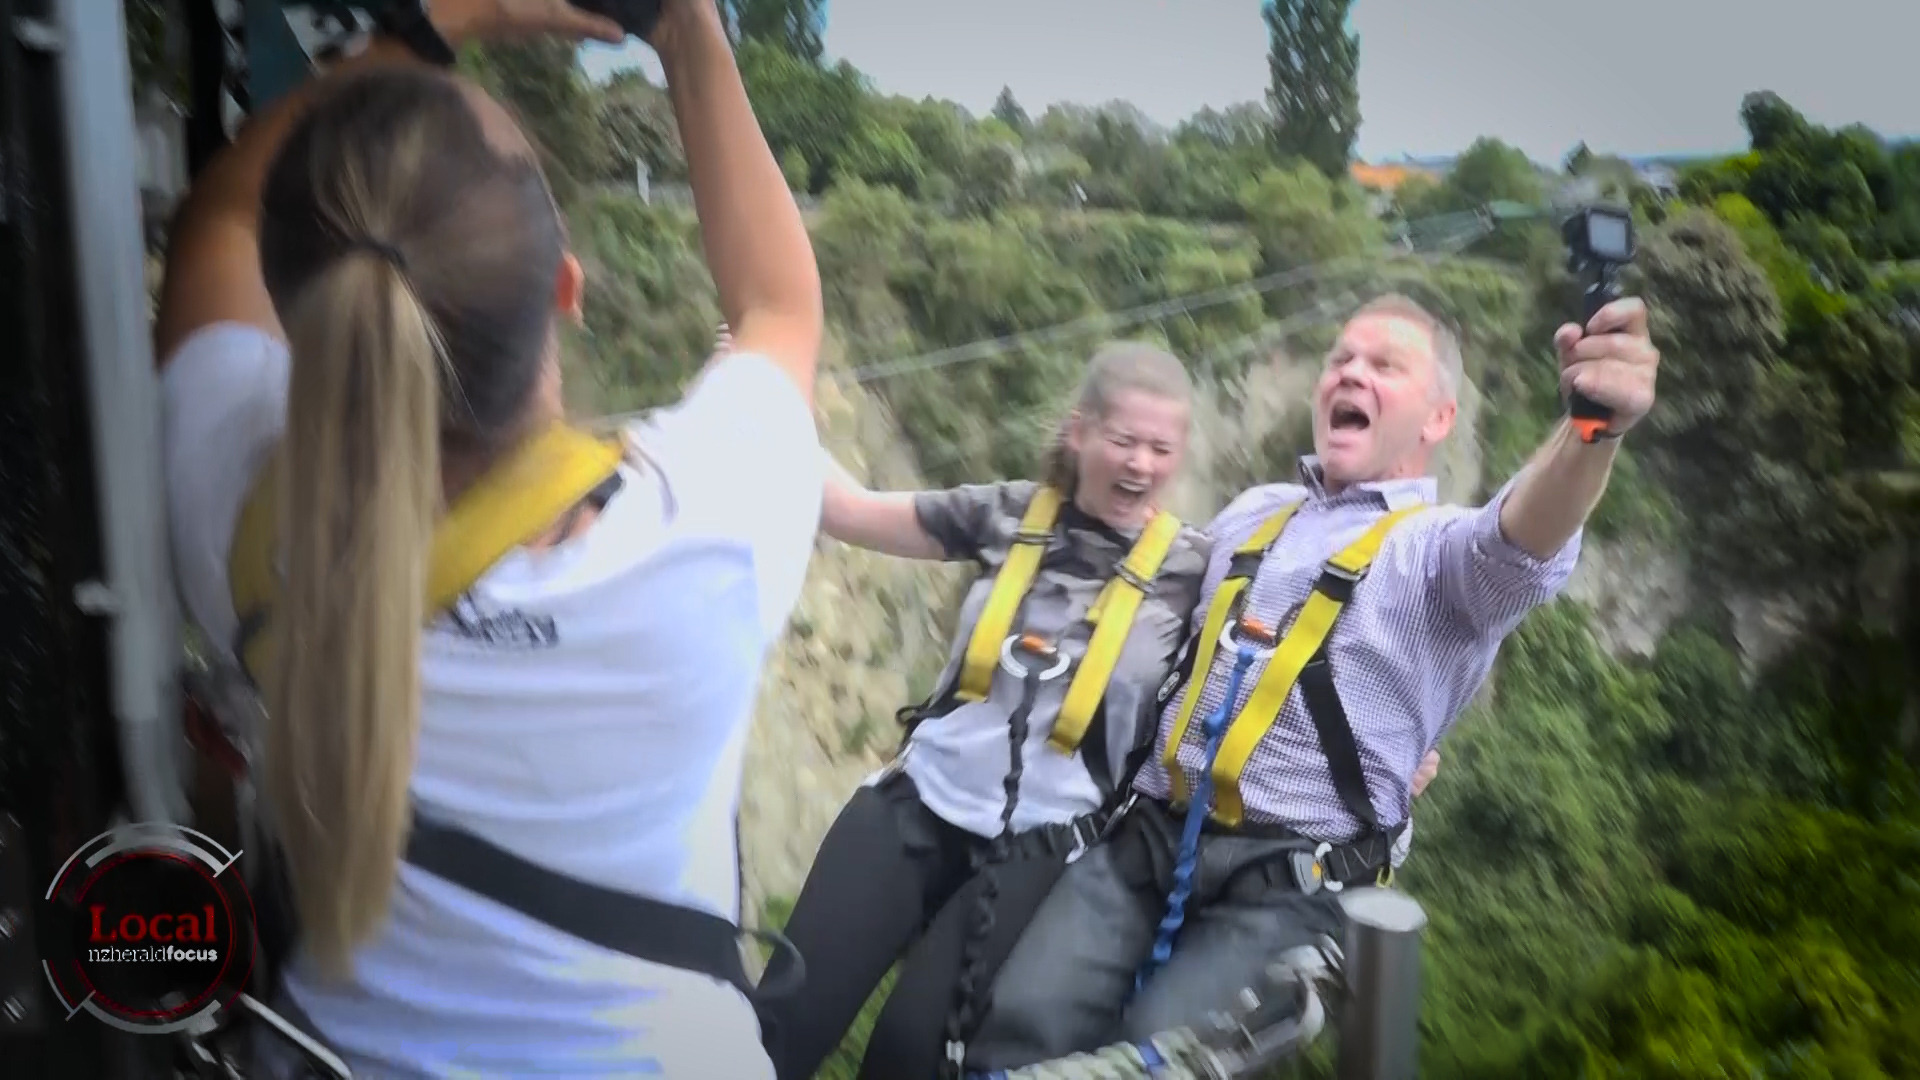 Local Focus: High School leavers launch Taupō bungy with leap into next chapter